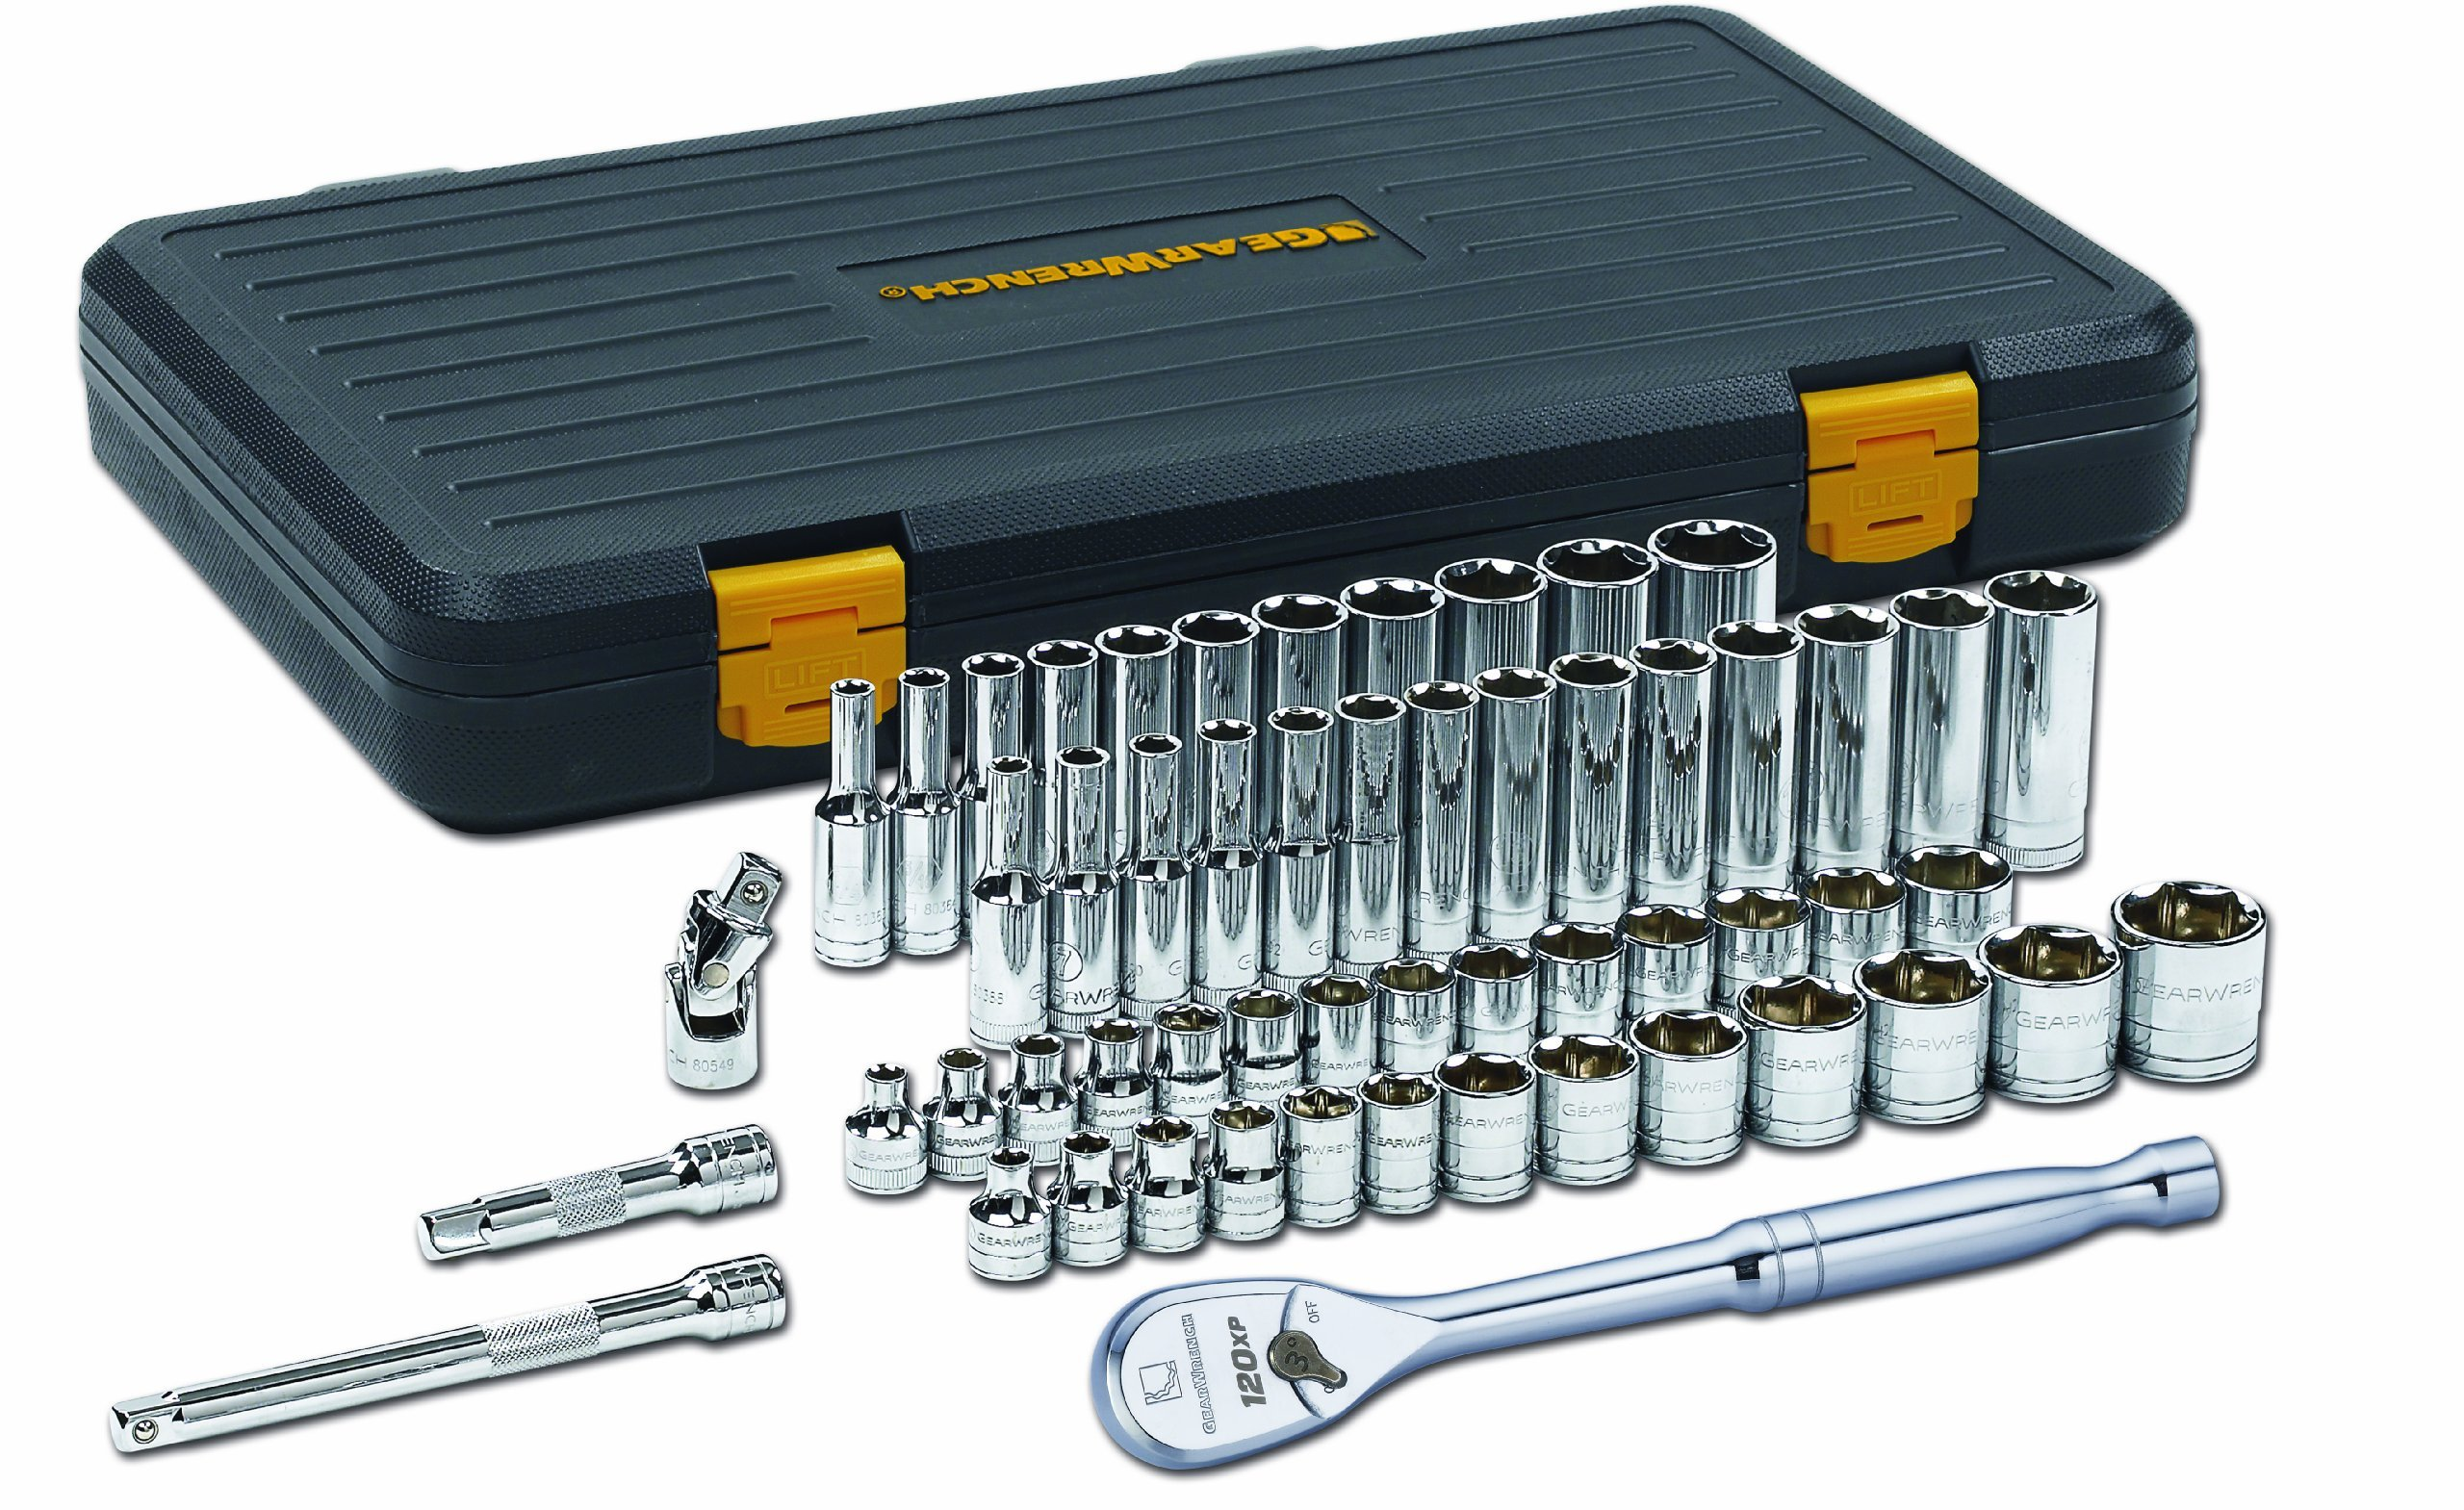 GearWrench 80550P 3/8-Inch Drive SAE/Metric 6 Point Standard and Deep Socket Set, 56-Piece by Apex Tool Group